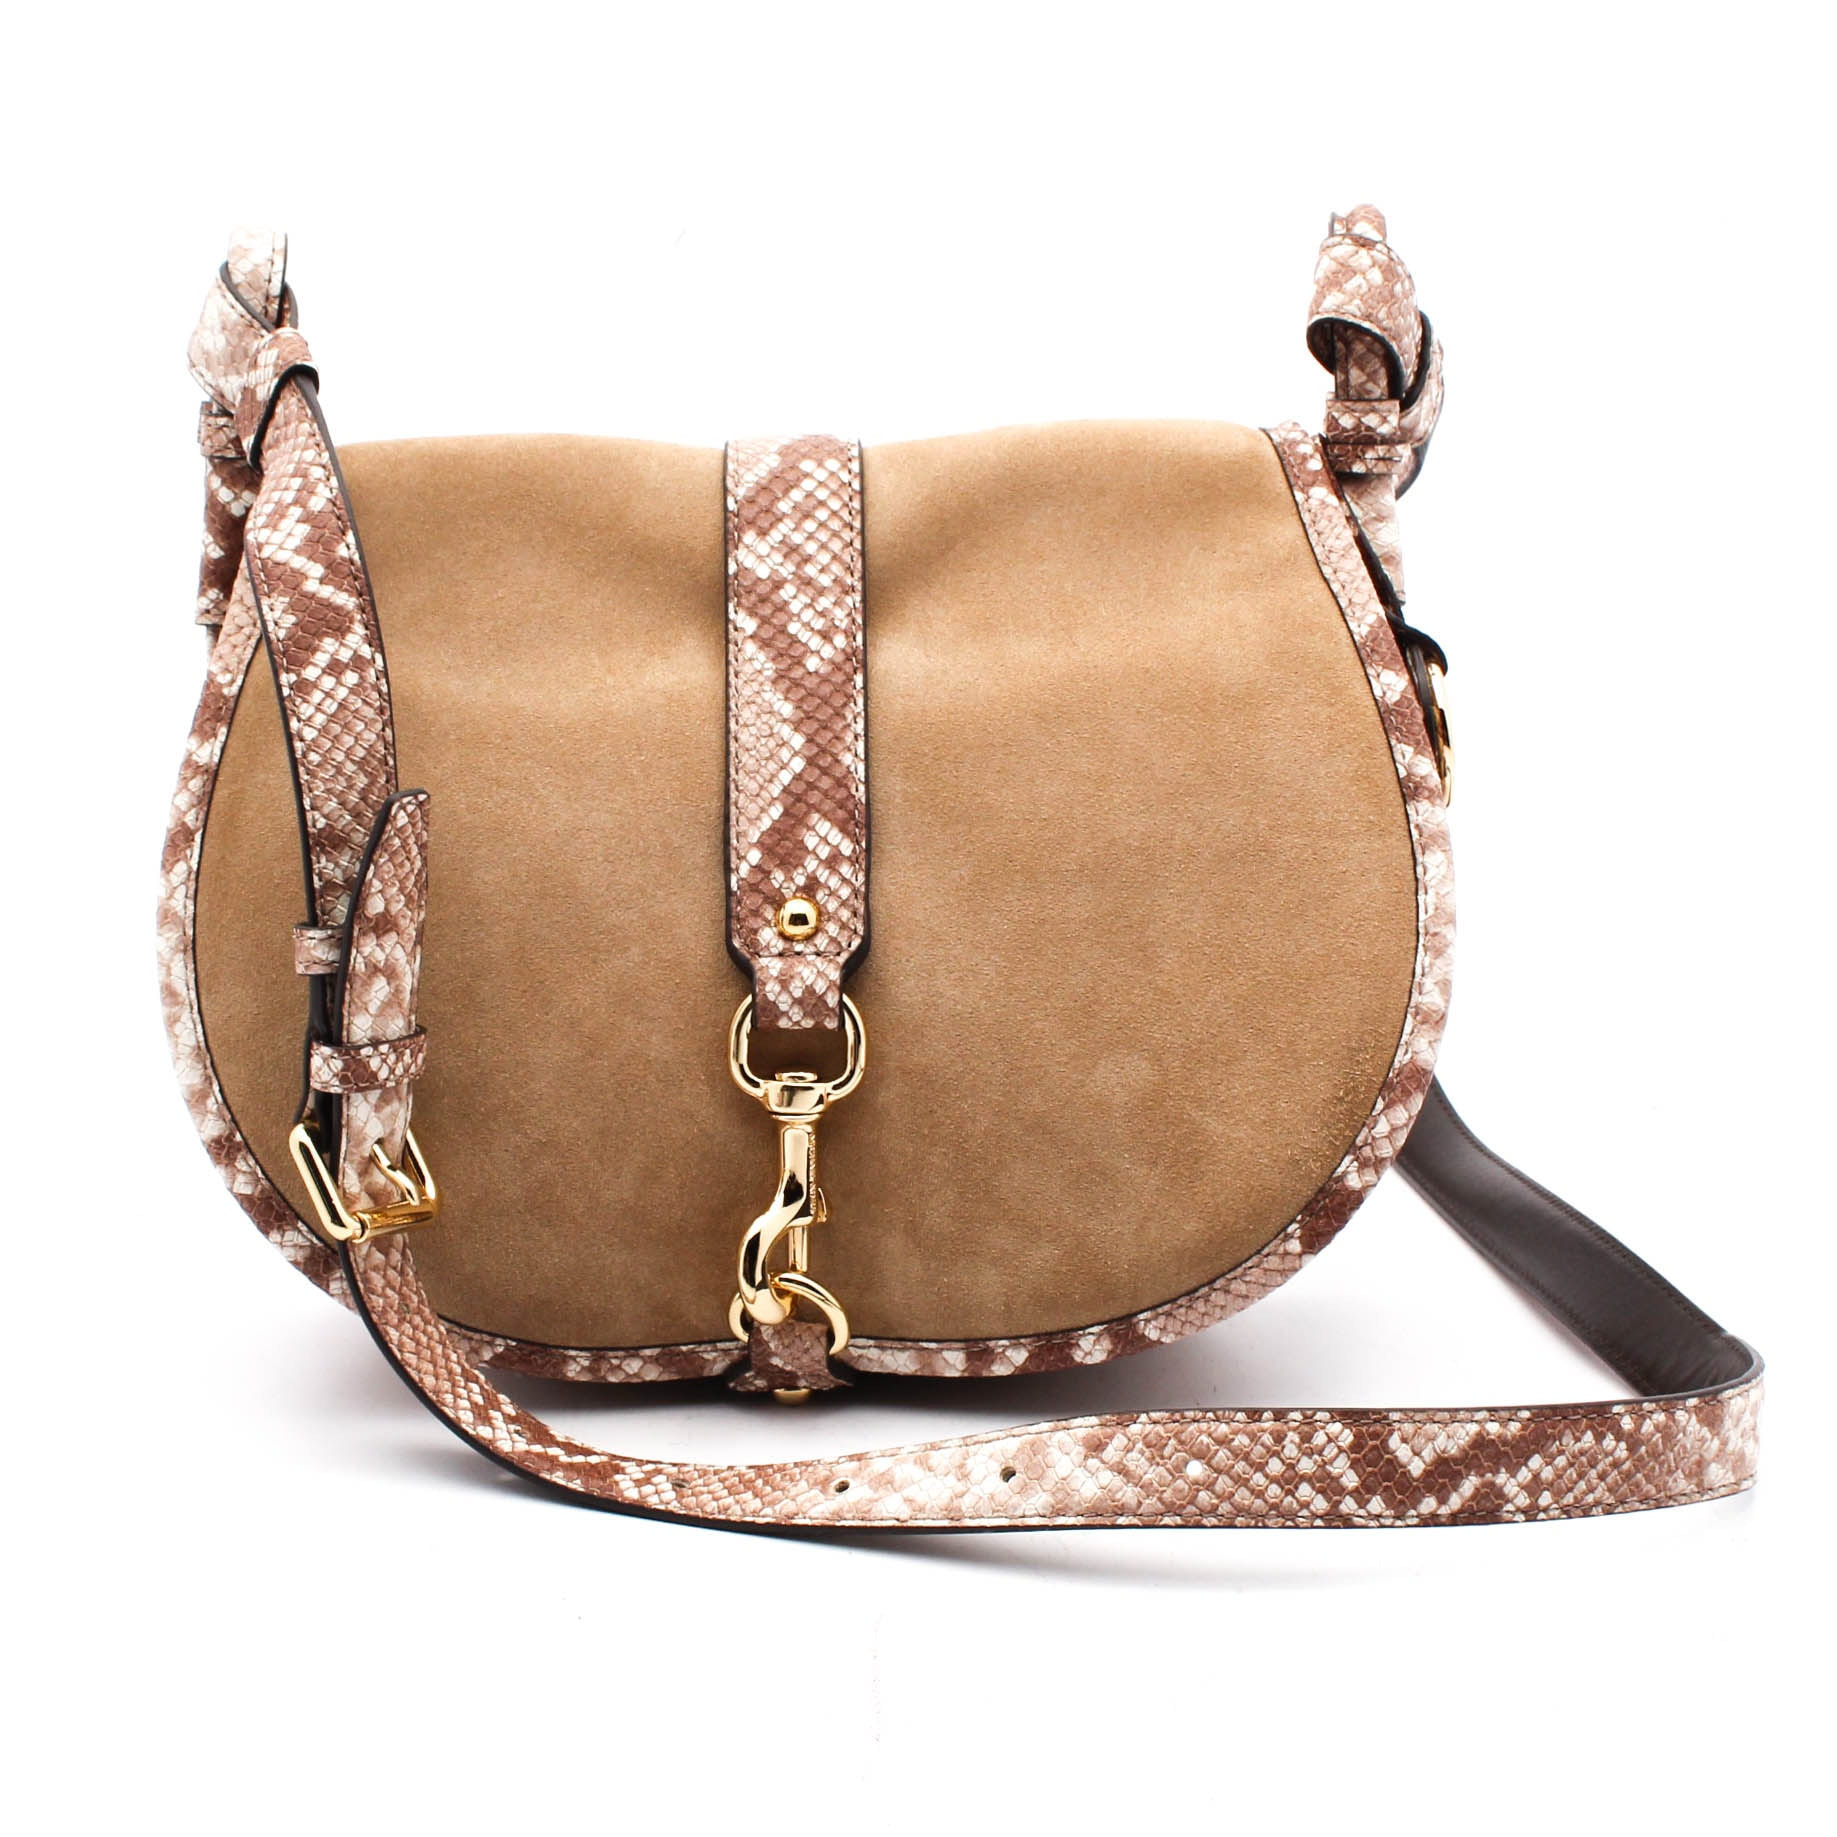 MICHAEL Michael Kors Suede and Snake Embossed Leather Saddle Bag